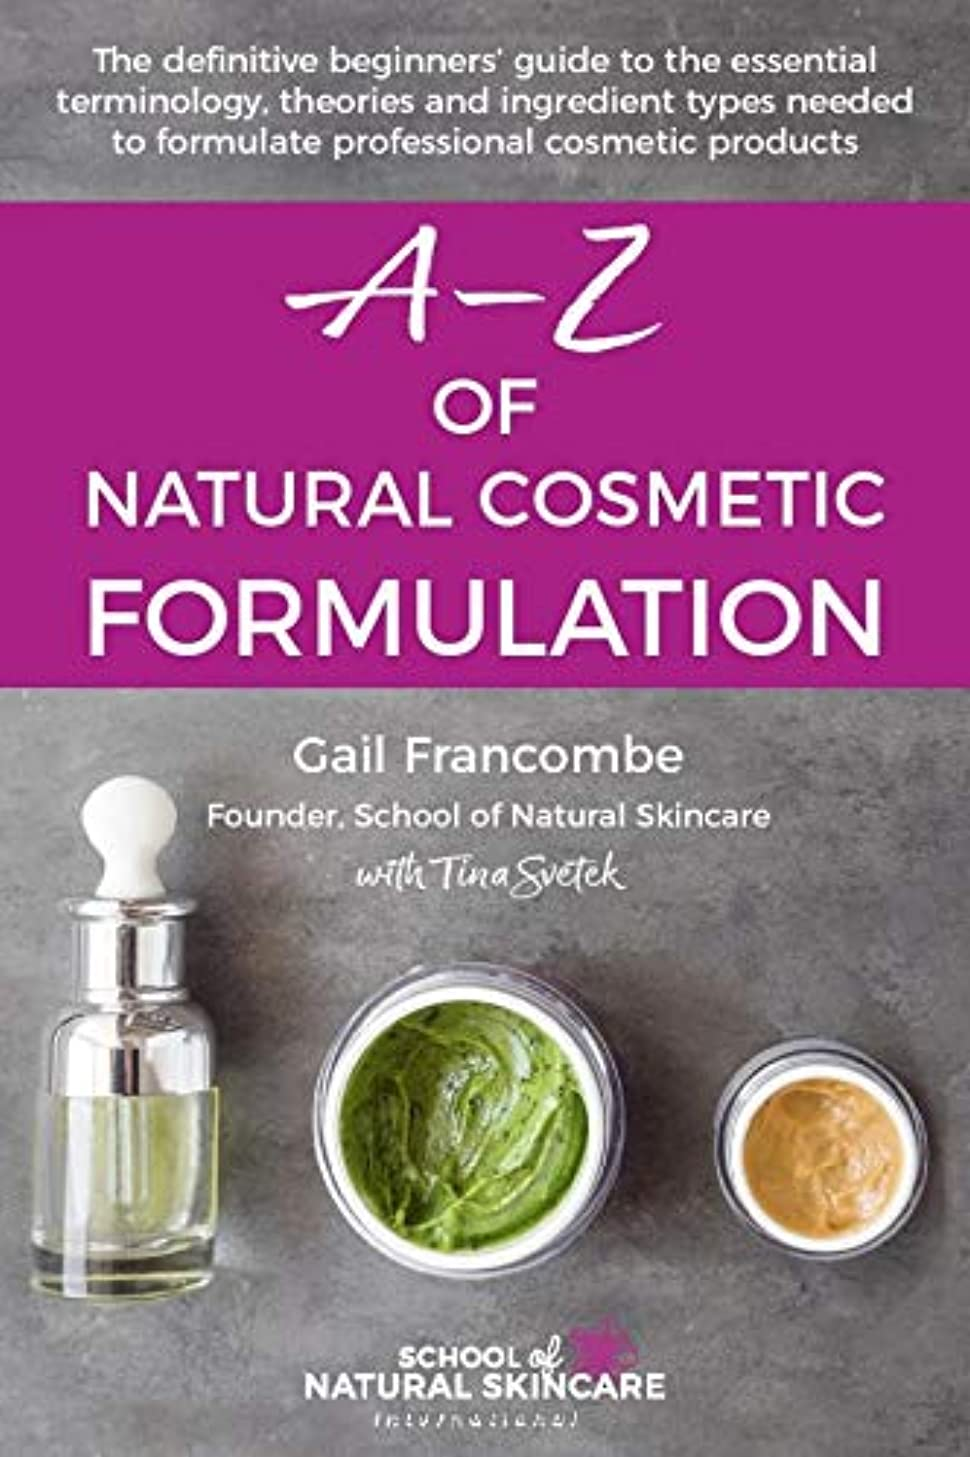 コンサルタント女性豊富A-Z of Natural Cosmetic Formulation: The definitive beginners' guide to the essential terminology, theories and ingredient types needed to formulate professional cosmetic products